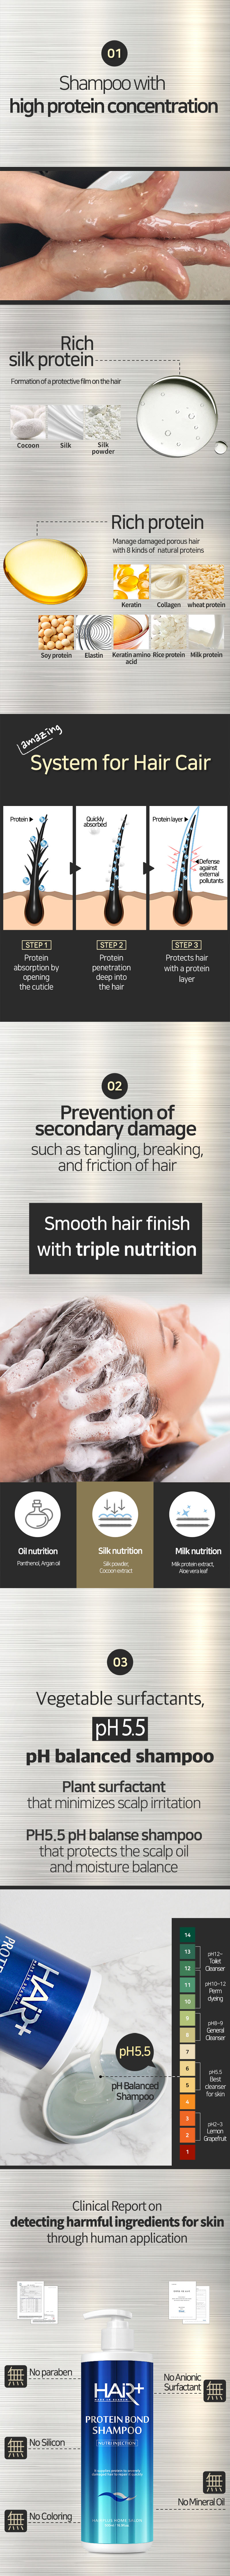 Hair Plus Protein Bond Shampoo 02